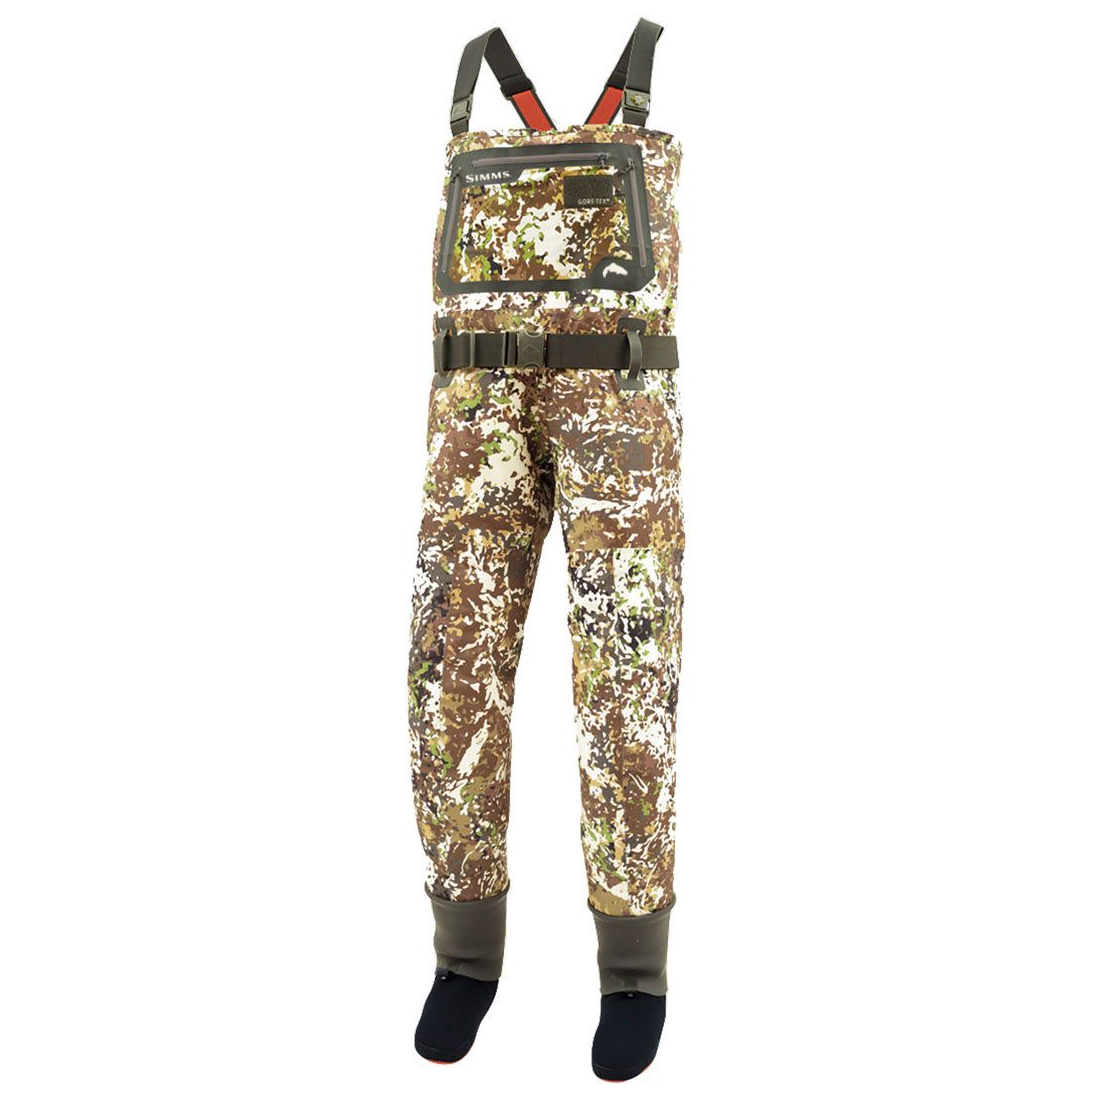 G3 GUIDE RIVER CAMO WADERS – STOCKINGFOOT